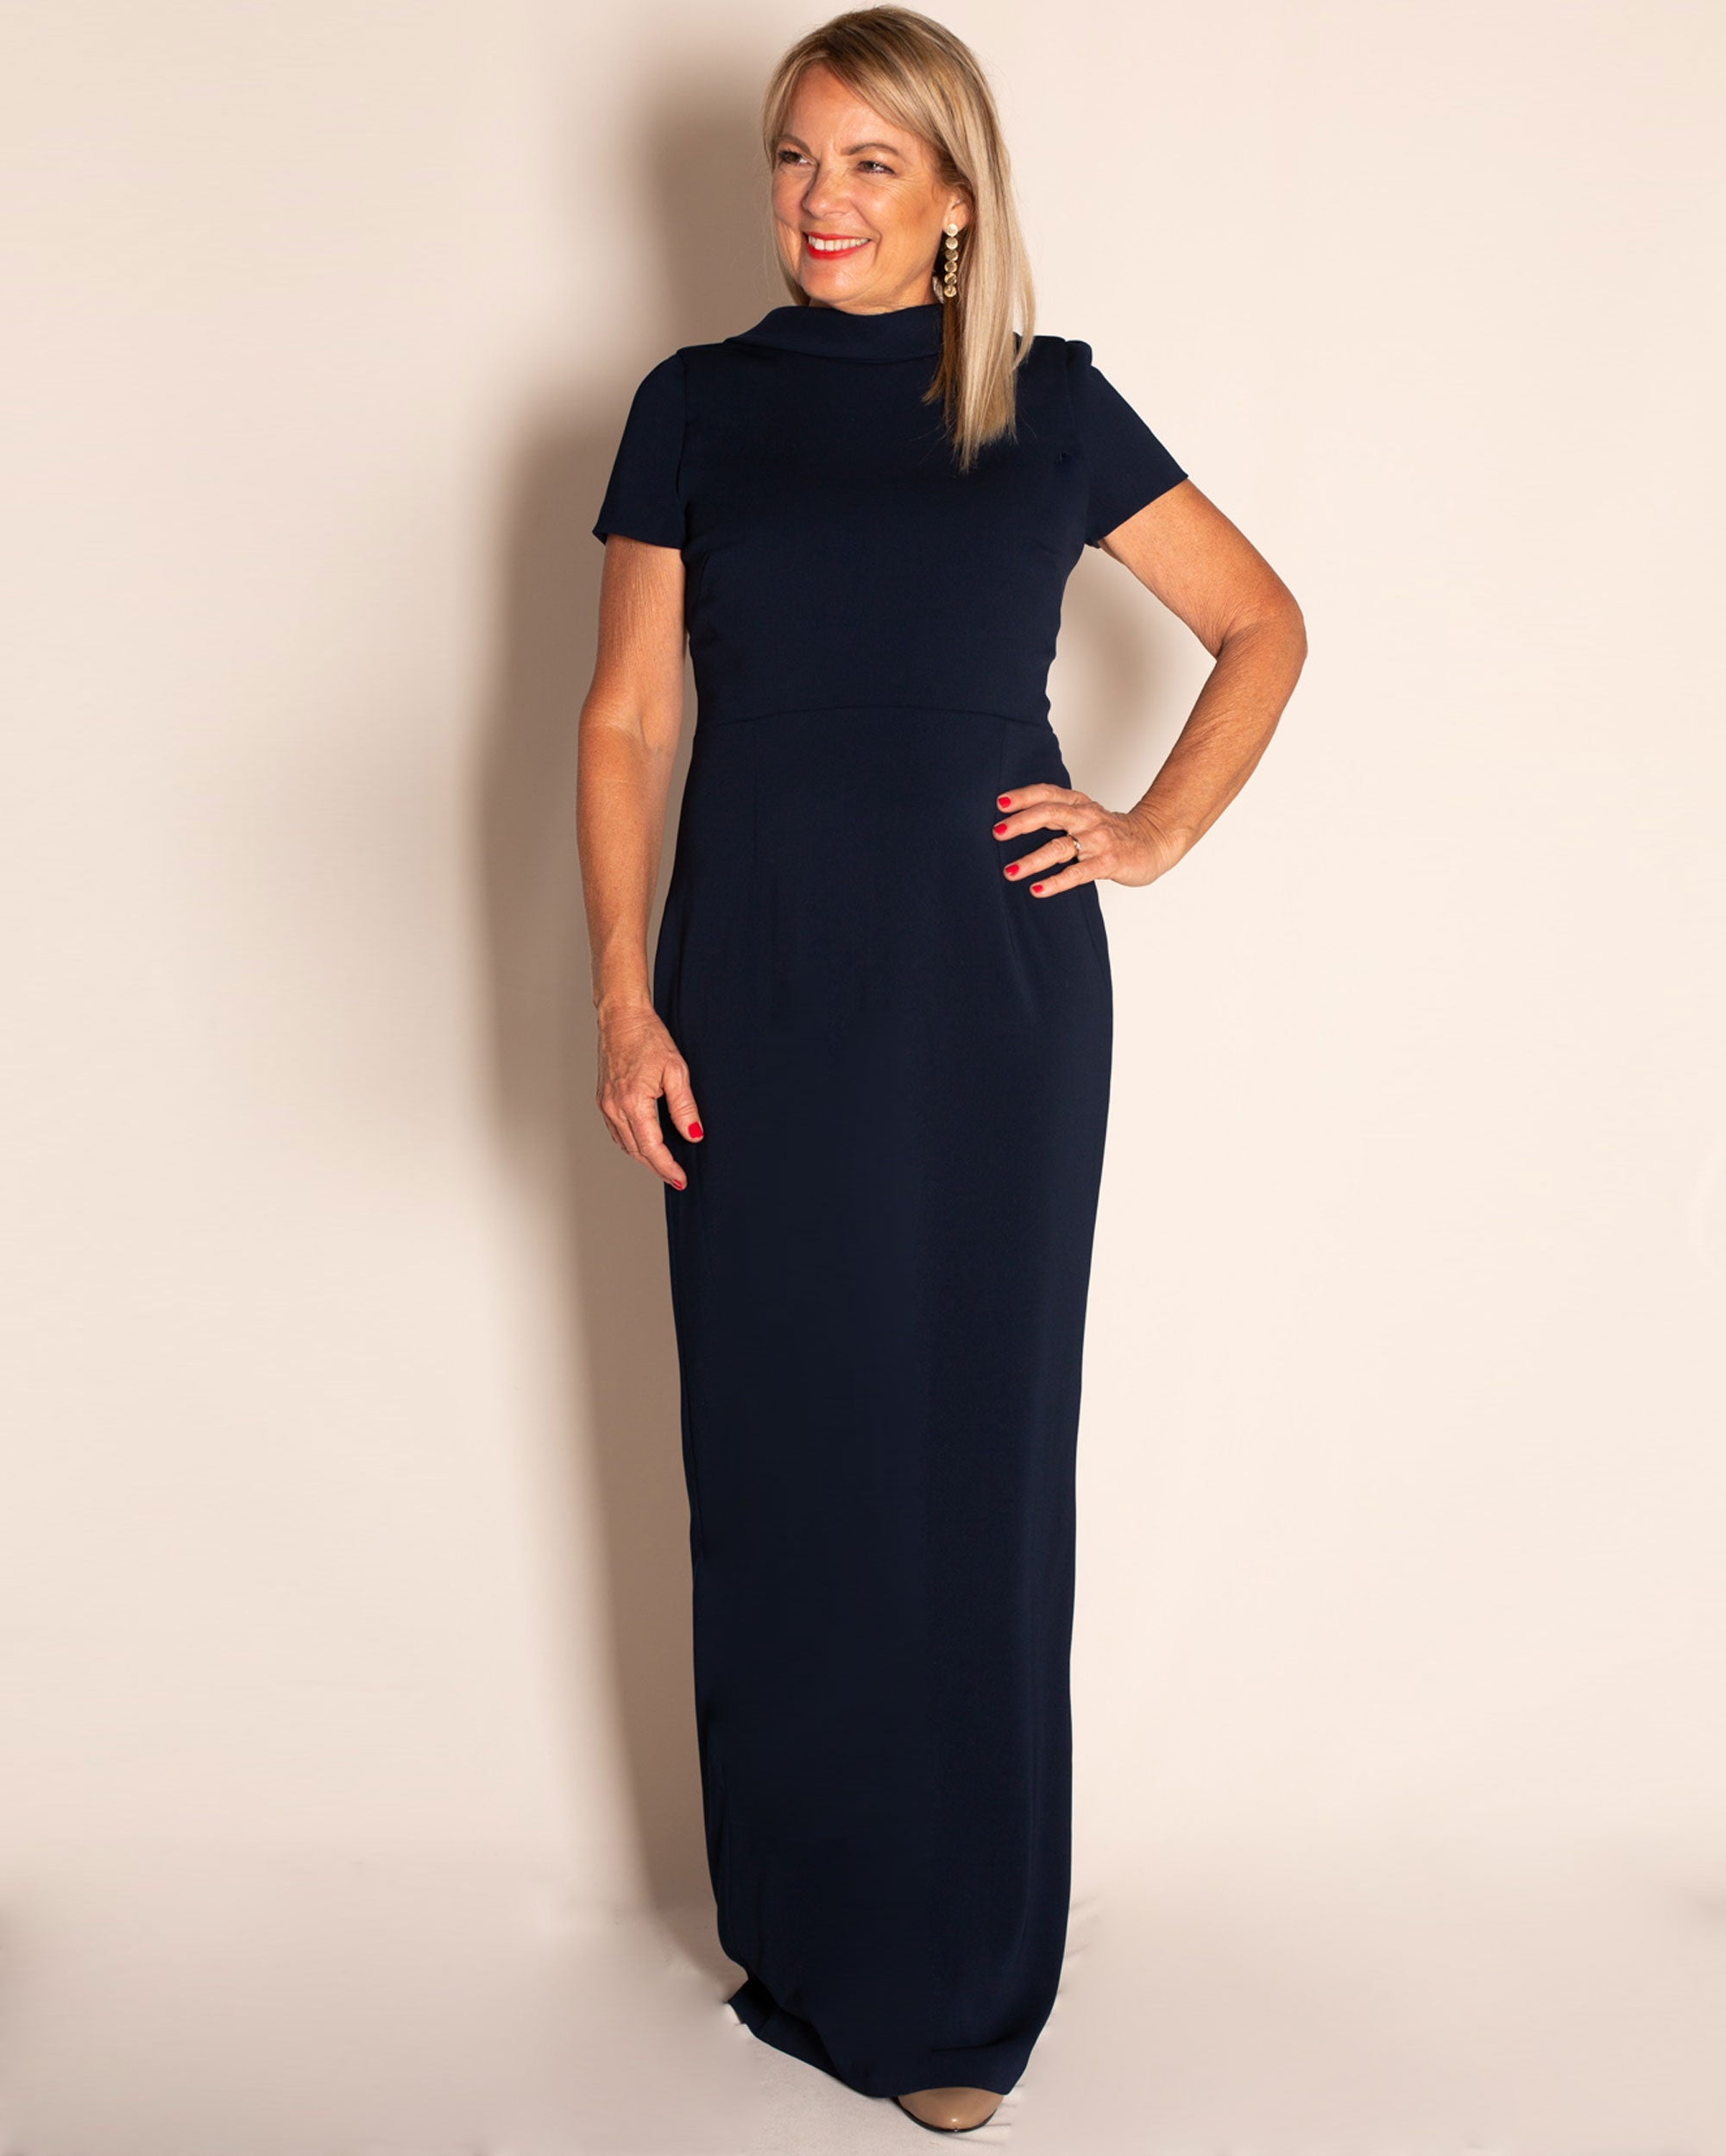 The Cheri Gown